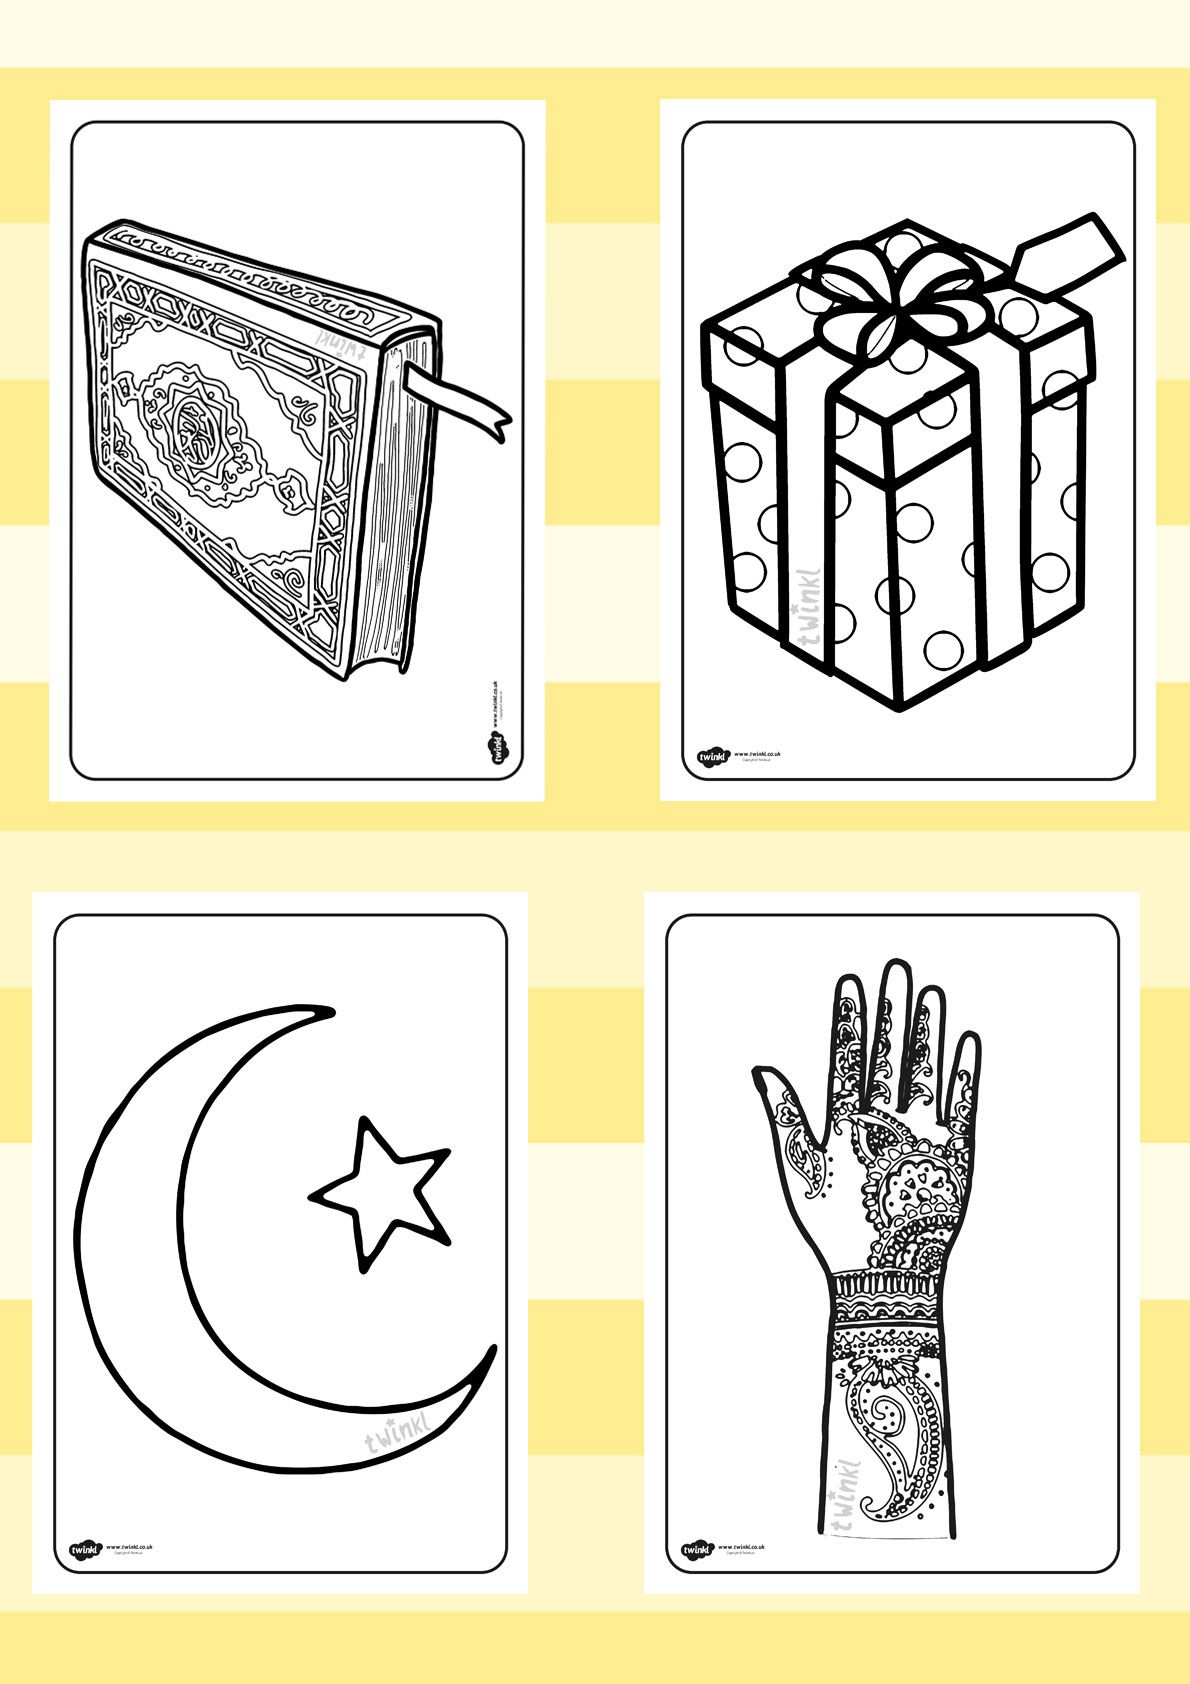 Twinkl Resources Gt Gt Eid Colouring Sheets Gt Gt Printable